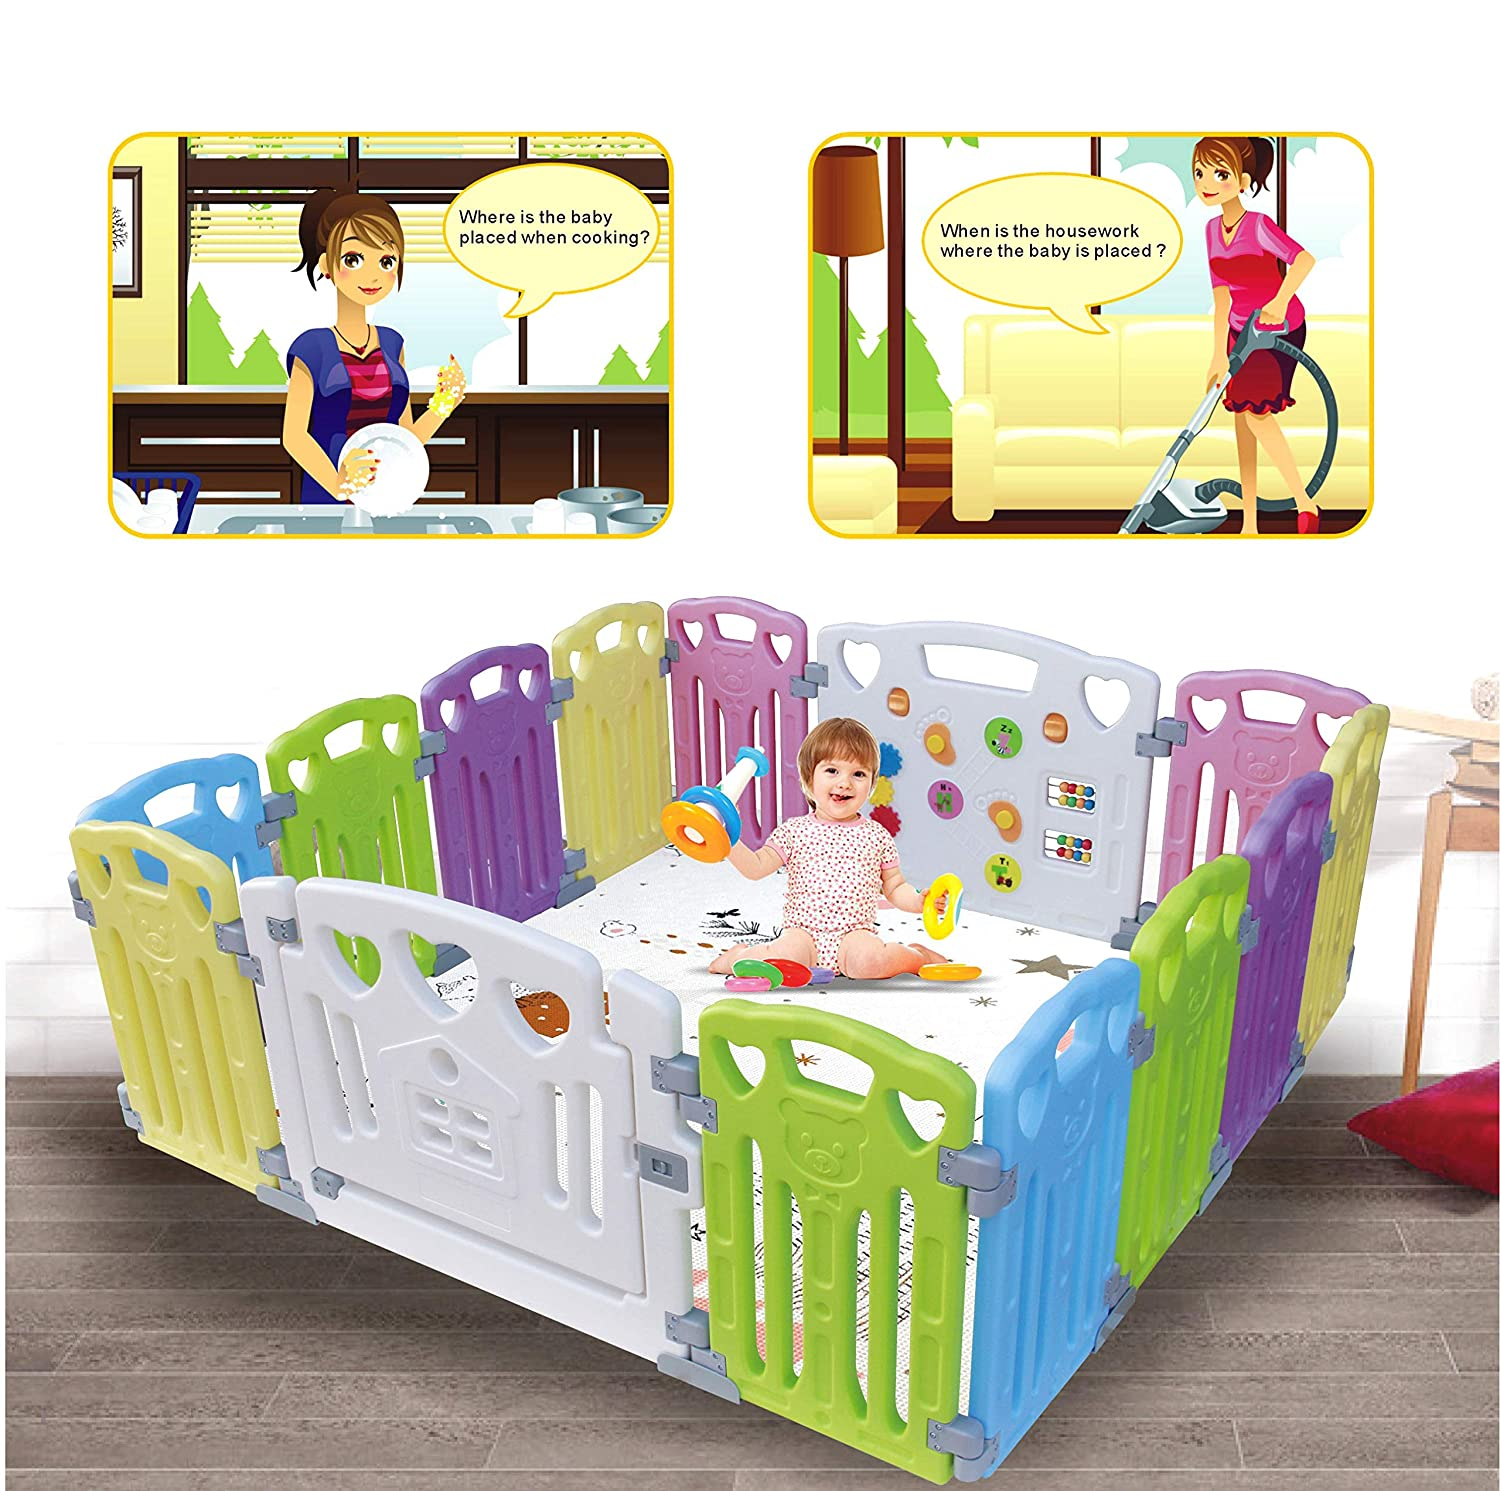 Baby Playpen Kids Activity Centre Safety Play Yard Home Indoor Outdoor New Pen multicolour, Classic set 14 panel